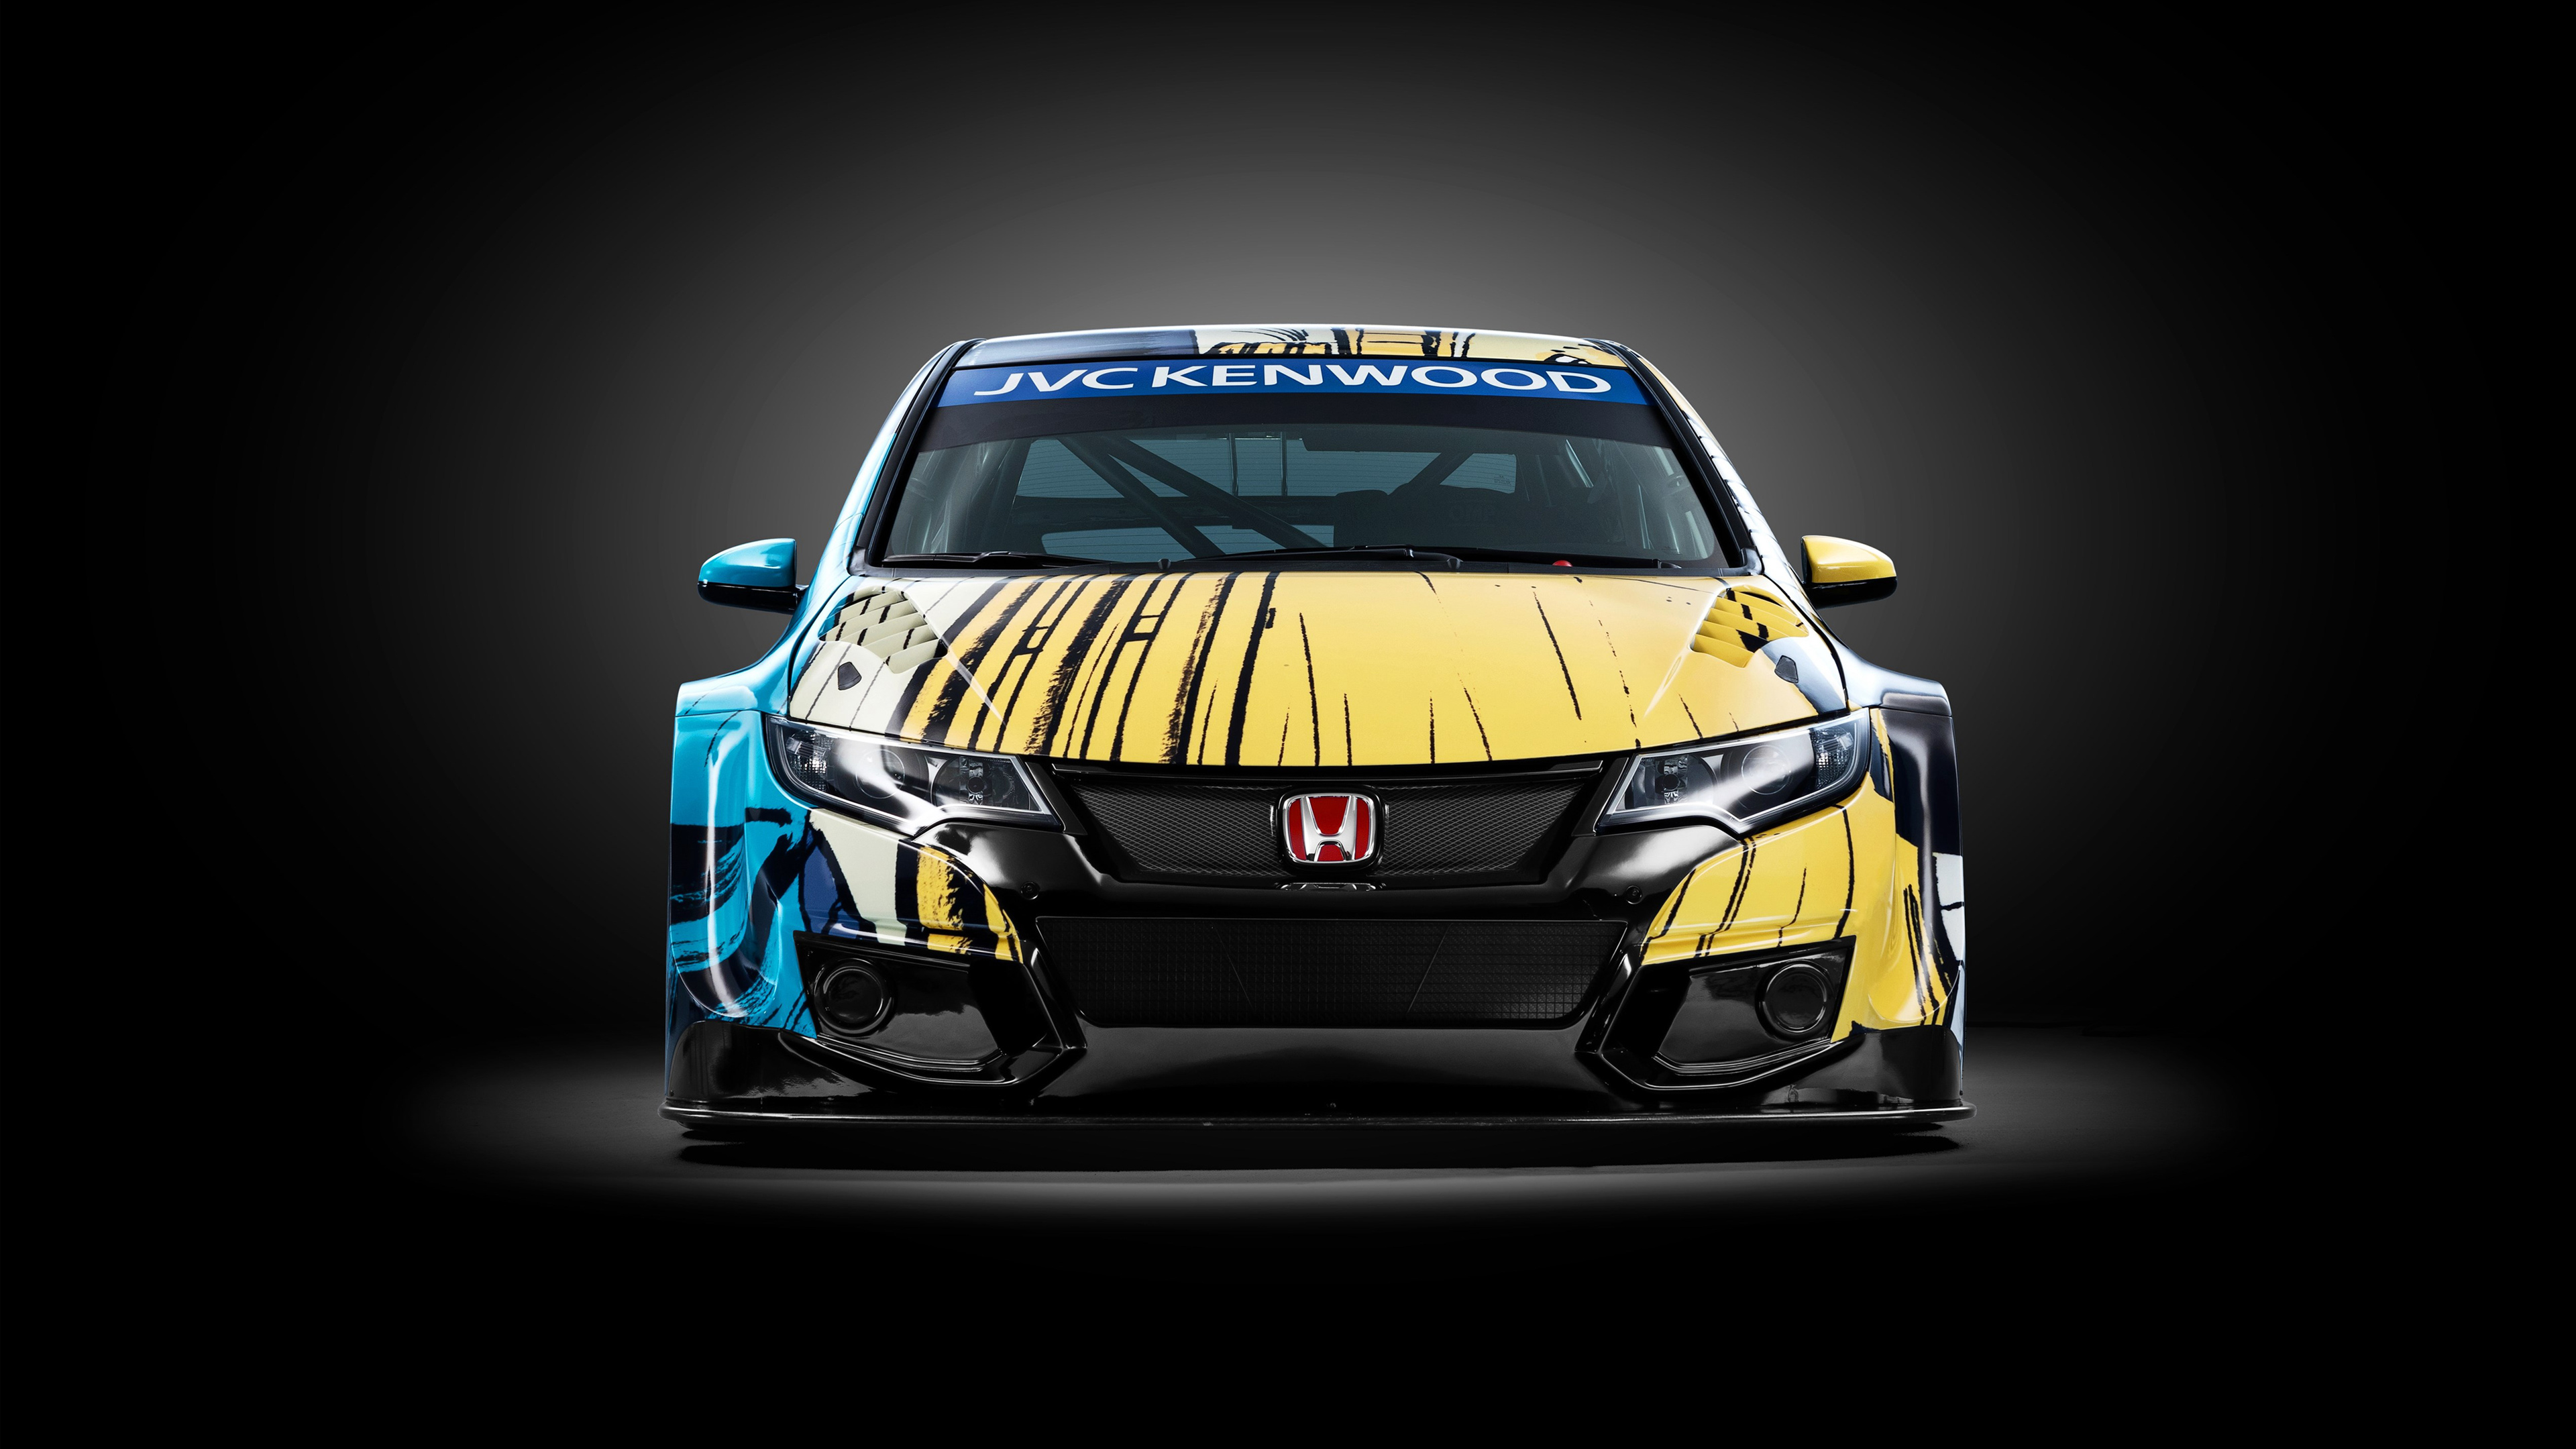 Car Wallpapers Backgrounds Hd: Honda Civic WTCC Wallpaper